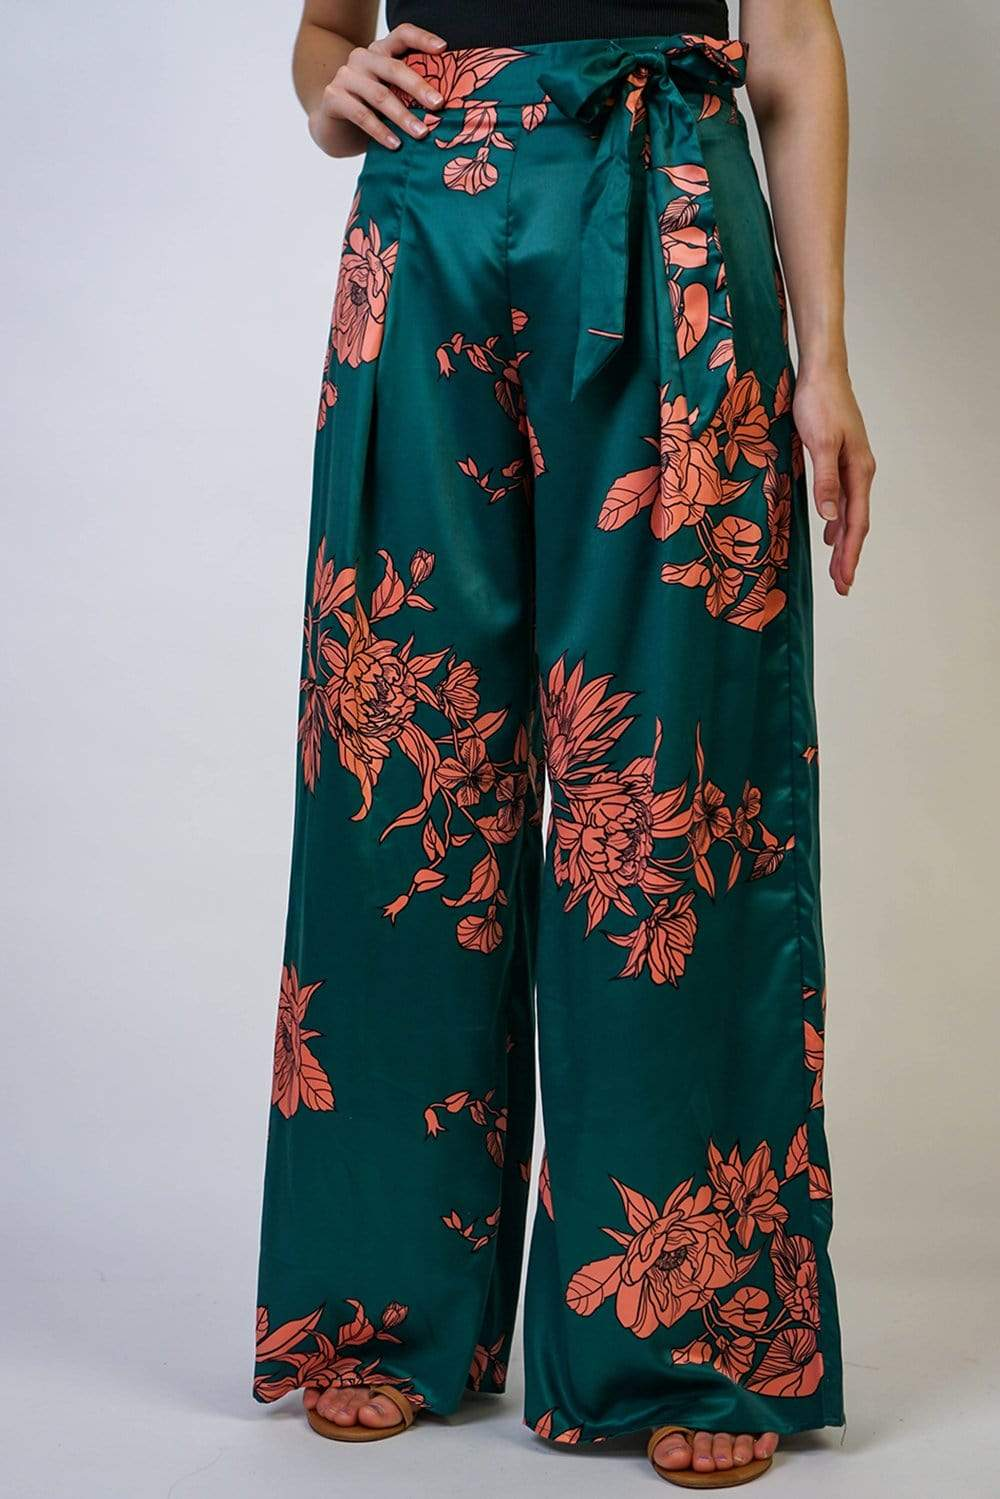 These satin pants are perfect for all kinds of occasions. Featuring an orange and green dragon floral design with a wide-leg design. These are made for a relaxed fit and to give you a slouchy silhouette. High-wasted with a wrap belt. Try yours with the matching wrap top to wear the two piece set.